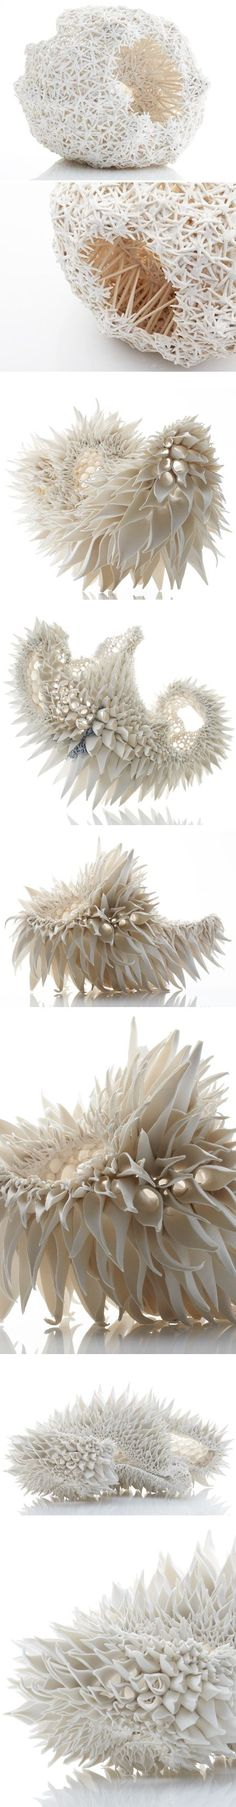 Whoa. Crazy, beautiful, organic ceramic pieces by Nuala O'Donovan, an artist based in Cork, Ireland. I am imagining that these photos do not do her work justice. I would love the chance to have a closer look, and actually hold one of these stunning objects in my hot little hands… very, very carefully, of course.